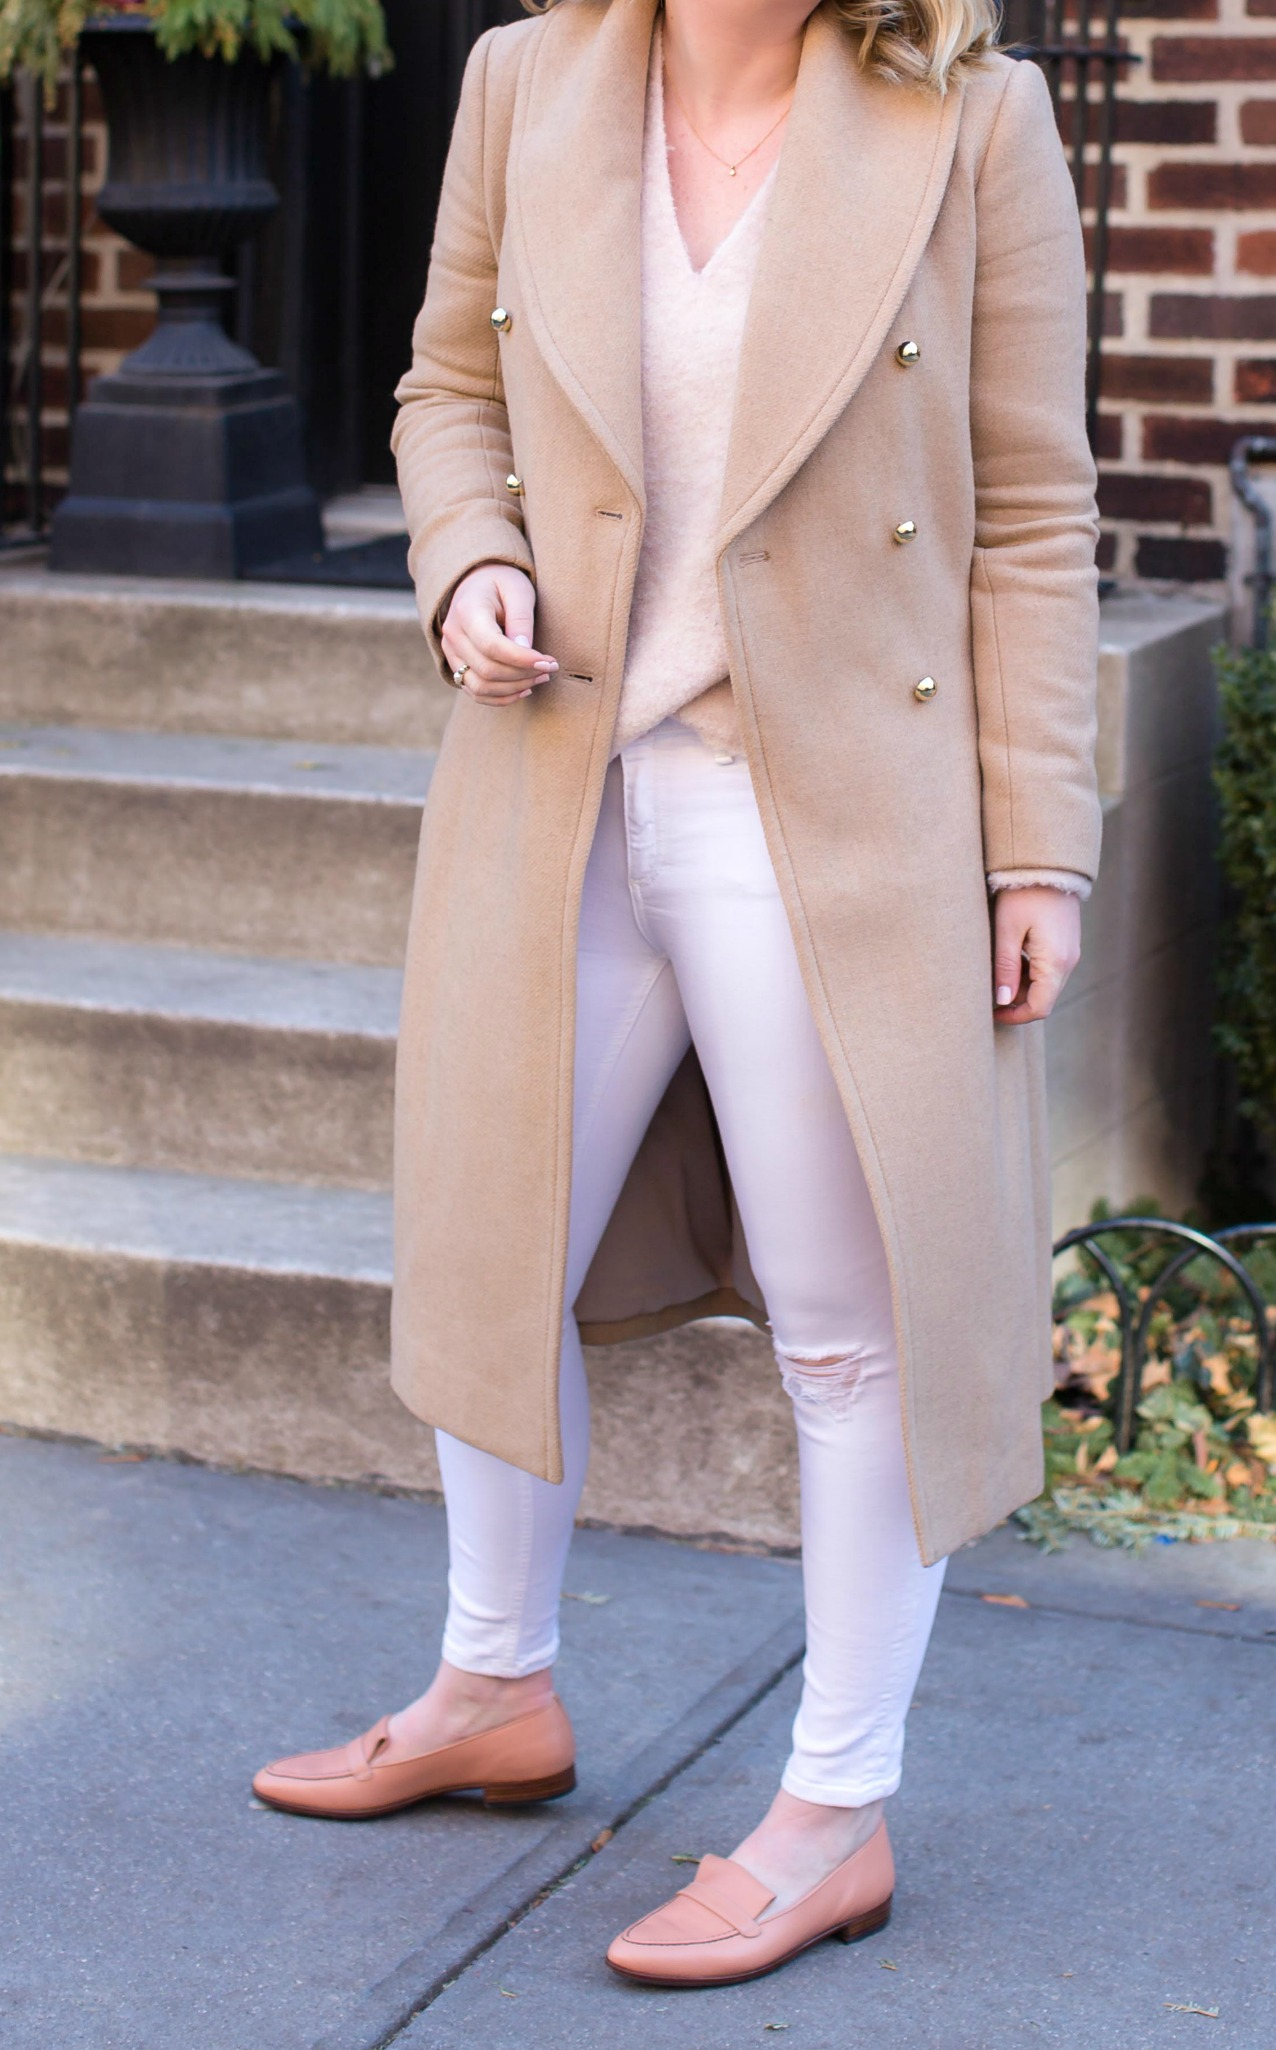 Styling White Jeans in Winter I wit & whimsy